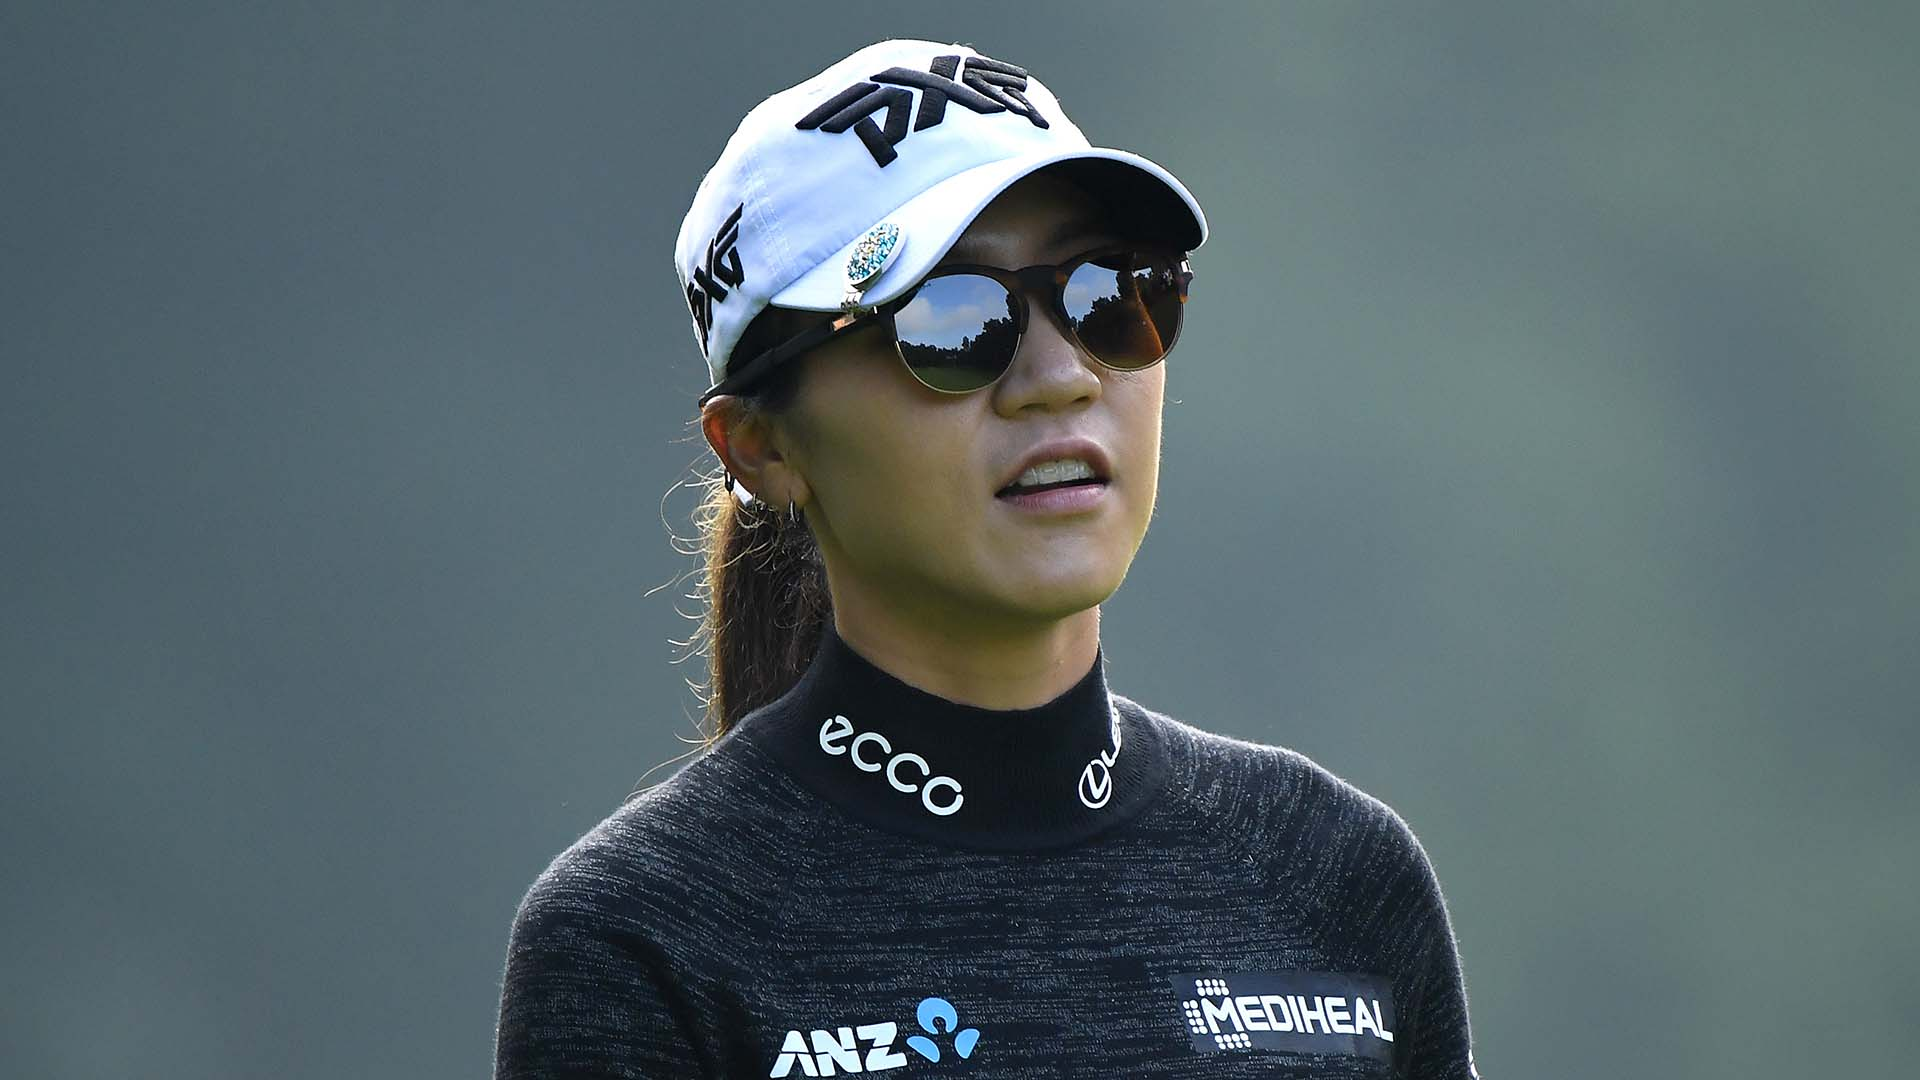 17-year-old Lydia Ko on how she handles being No. 1